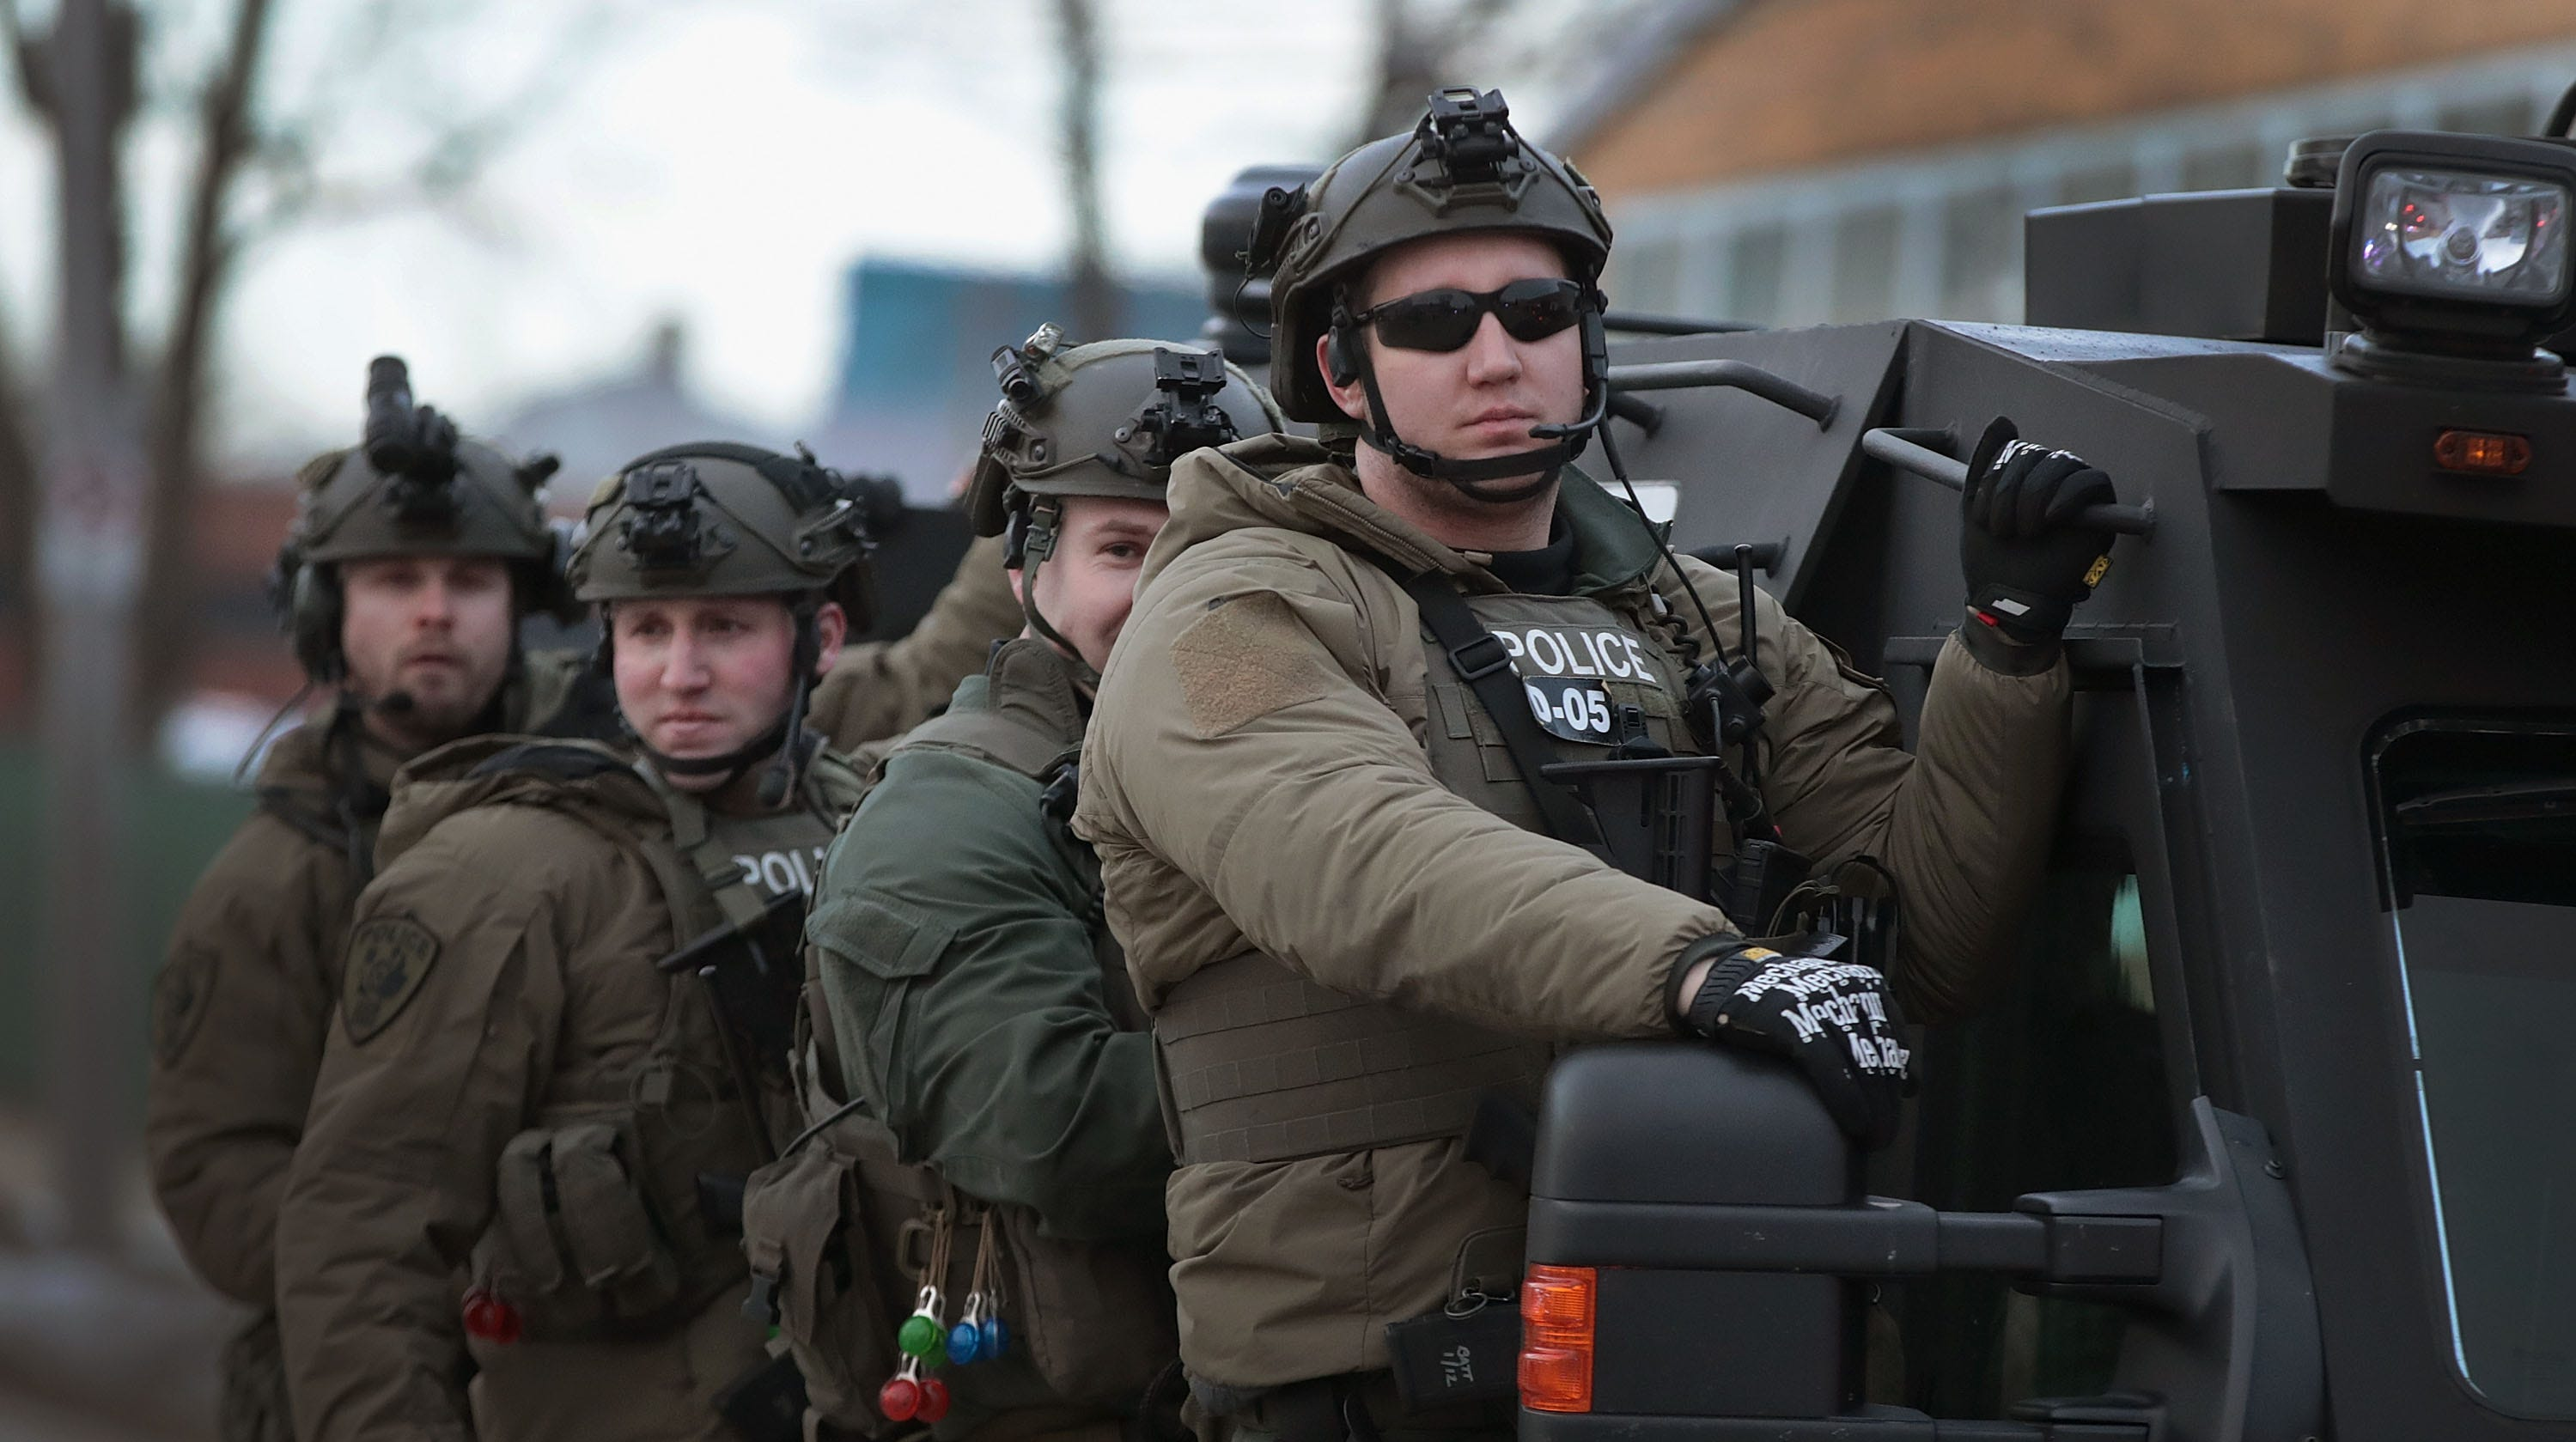 Police secure the area following a shooting at the Henry Pratt Company on February 15, 2019 in Aurora, Illinois. Five people were reported dead and 5 police officers wounded from the shooting. The gunman has been identified as Gary Martin, a 45-year-old man believed to be an employee at the company.